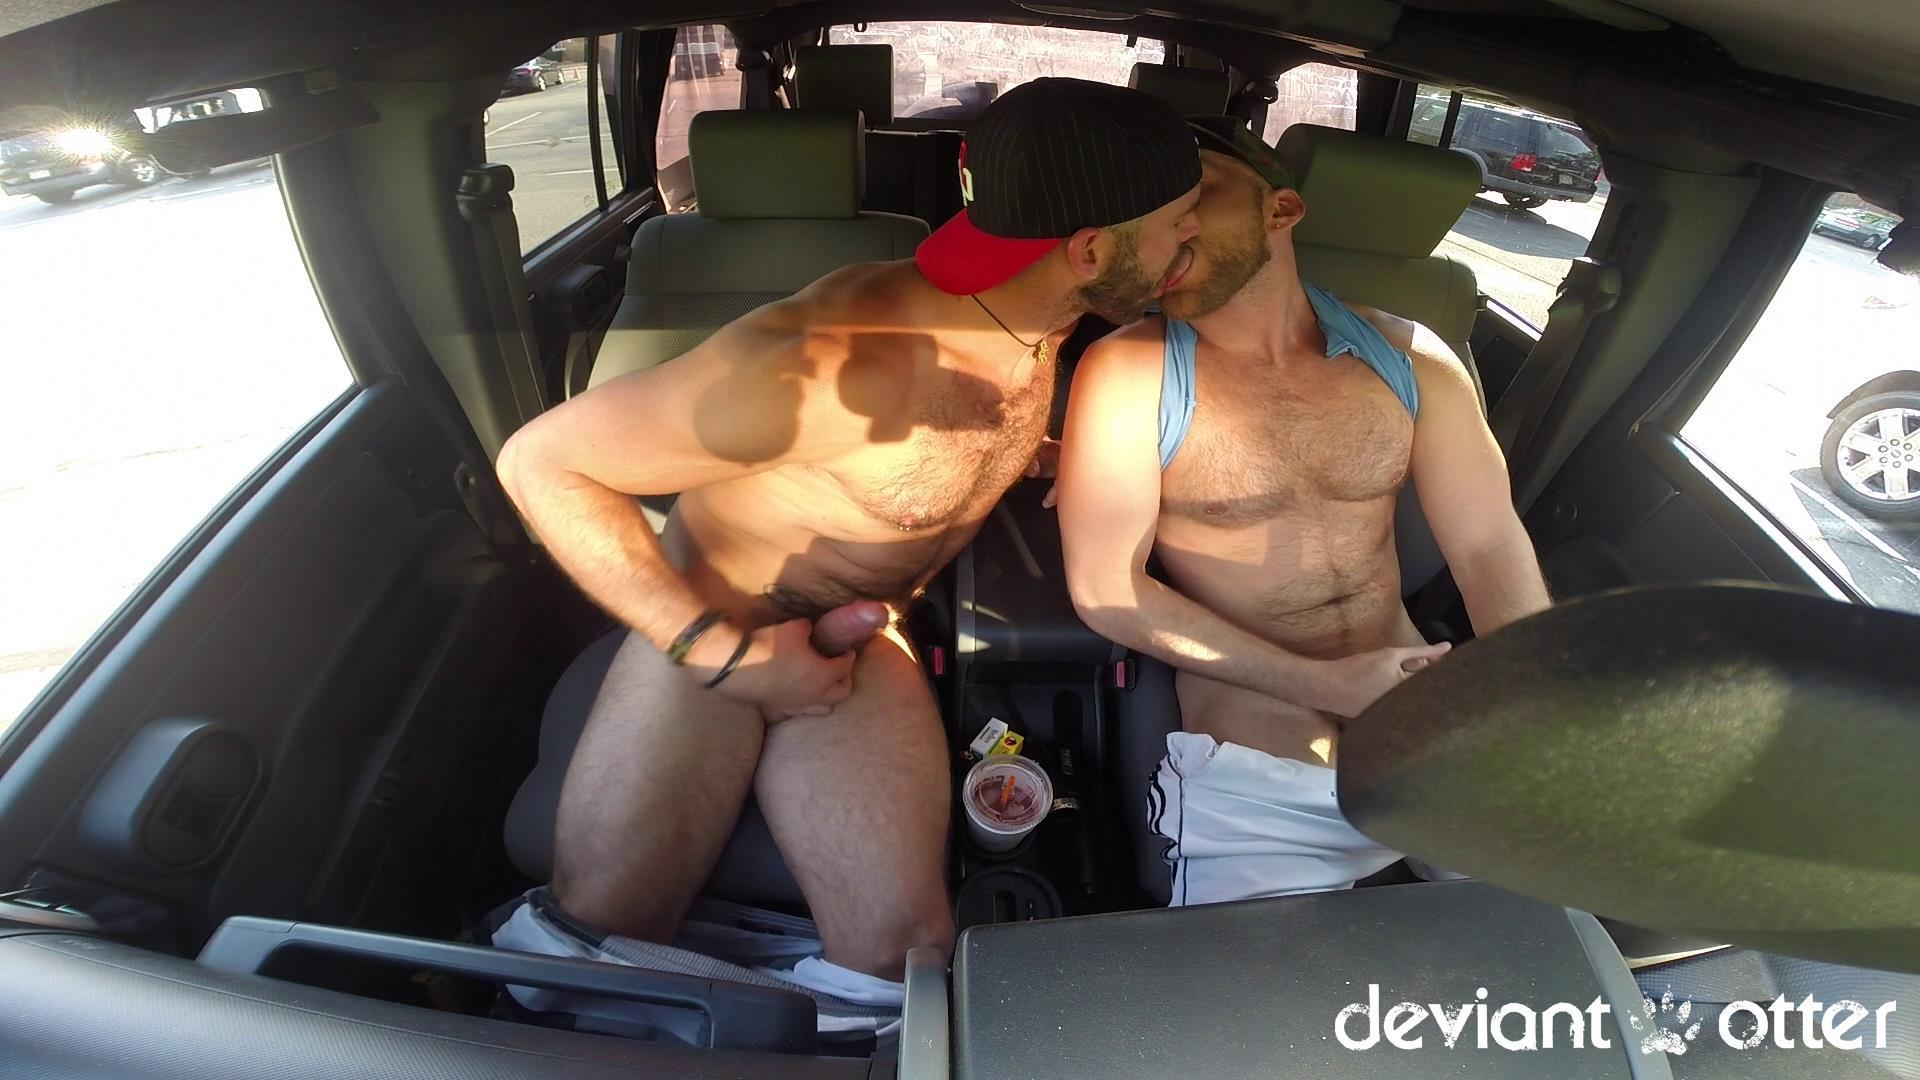 Deviant-Otter-Xavier-Sucking-Cock-In-Public-Hairy-Guys-Amateur-Gay-Porn-12 Masculine Hairy Guys Sucking Each Other's Cock In A Parking Lot